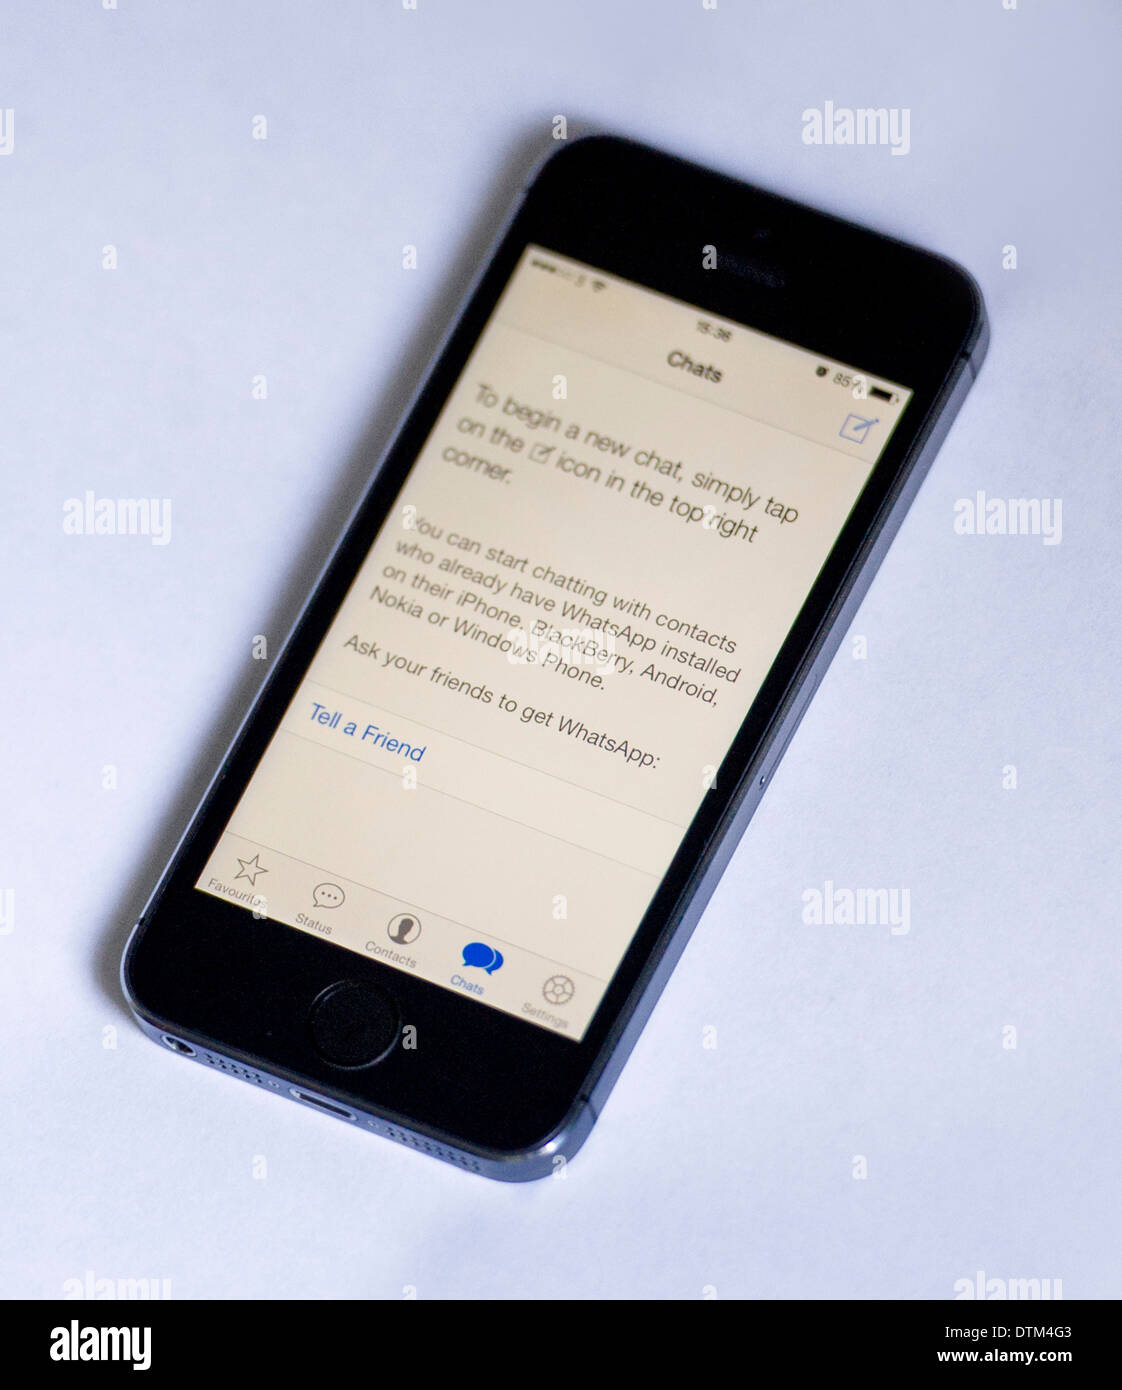 An iPhone 5S on a white  background, showing the Whatsapp app displaying instructions to start a new chat. - Stock Image